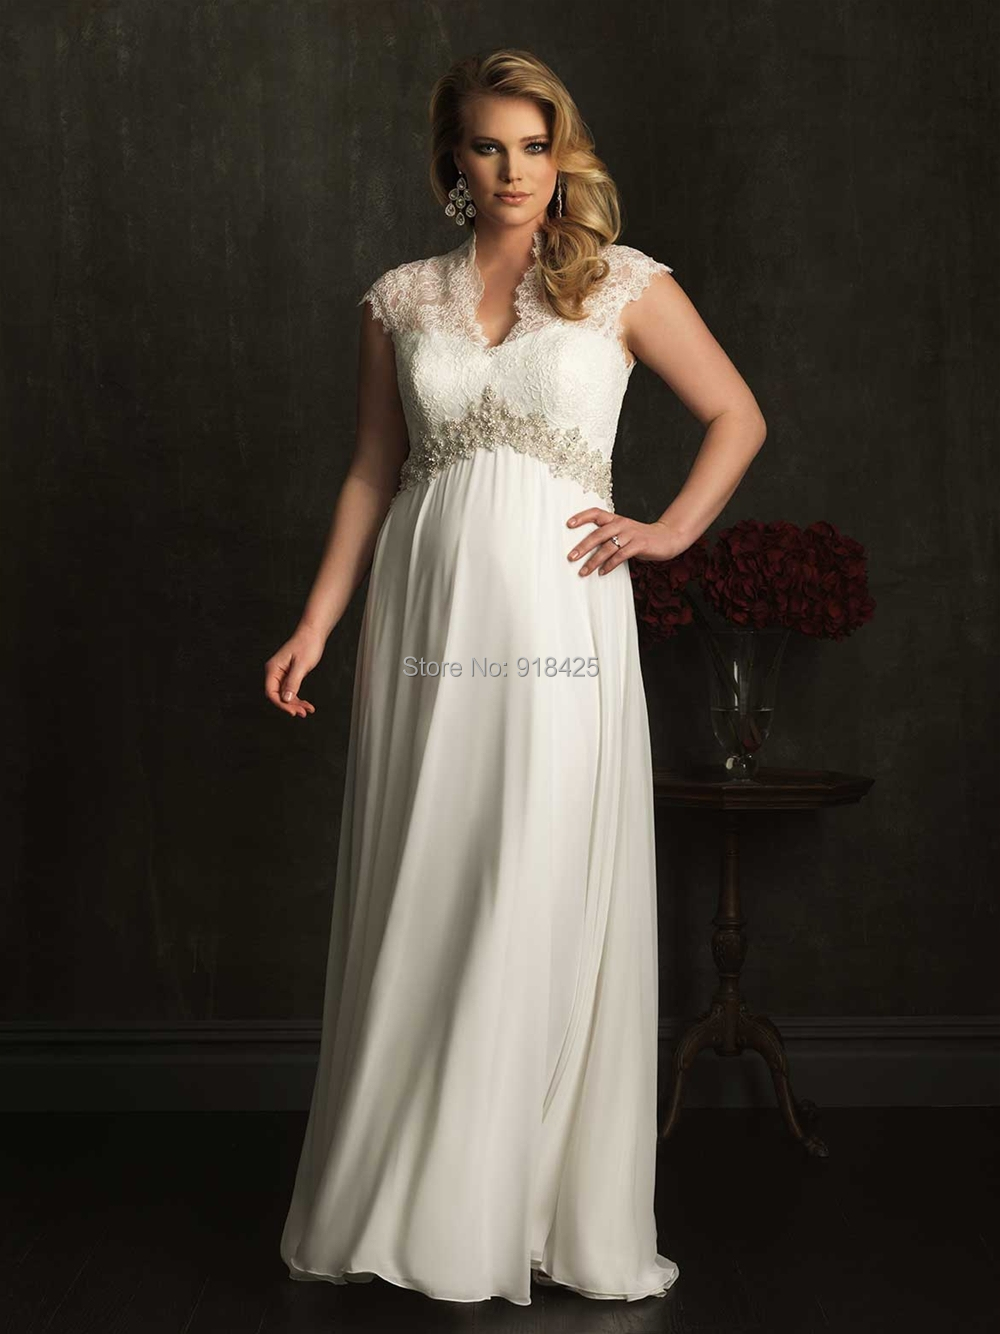 Lace cap sleeve chiffon empire waist plus size maternity for Plus size lace wedding dresses with sleeves